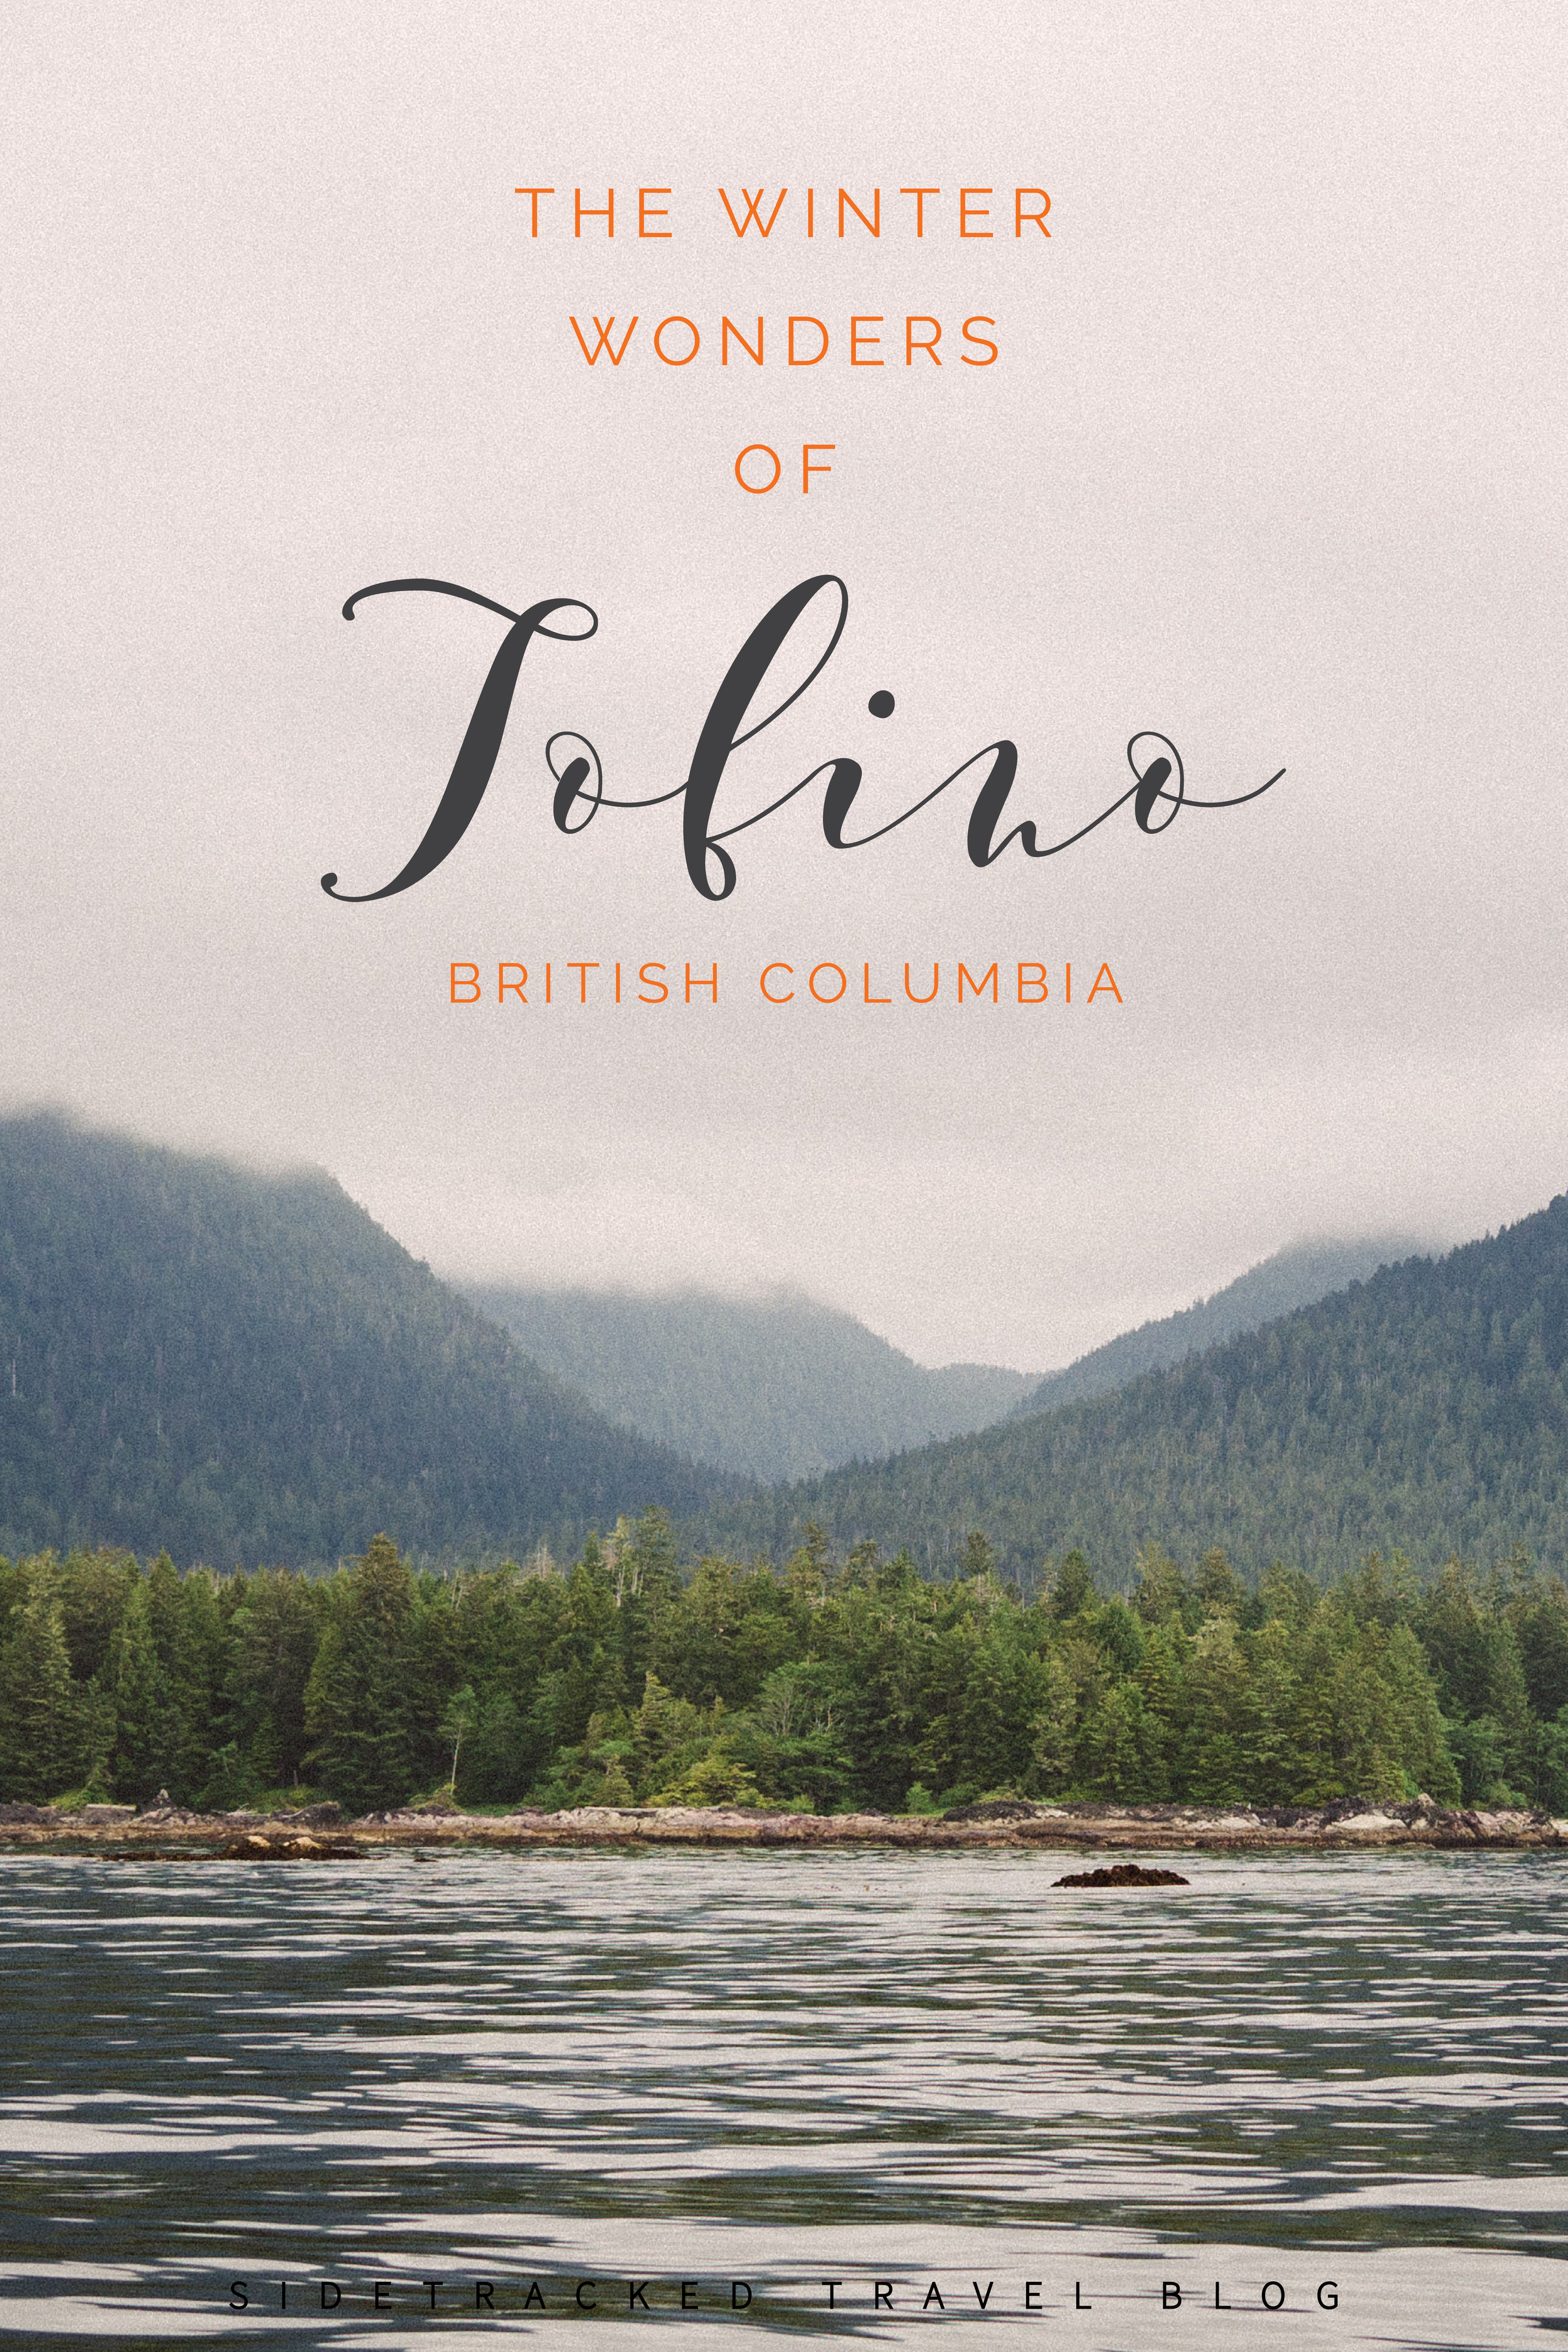 Heading to Vancouver Island? You simply have to visit Tofino, especially in the winter when the majority of tourists have gone home and you'll have this gorgeous Pacific jewel practically all to yourself. So pack your bags and explore the winter wonders in and around Tofino.